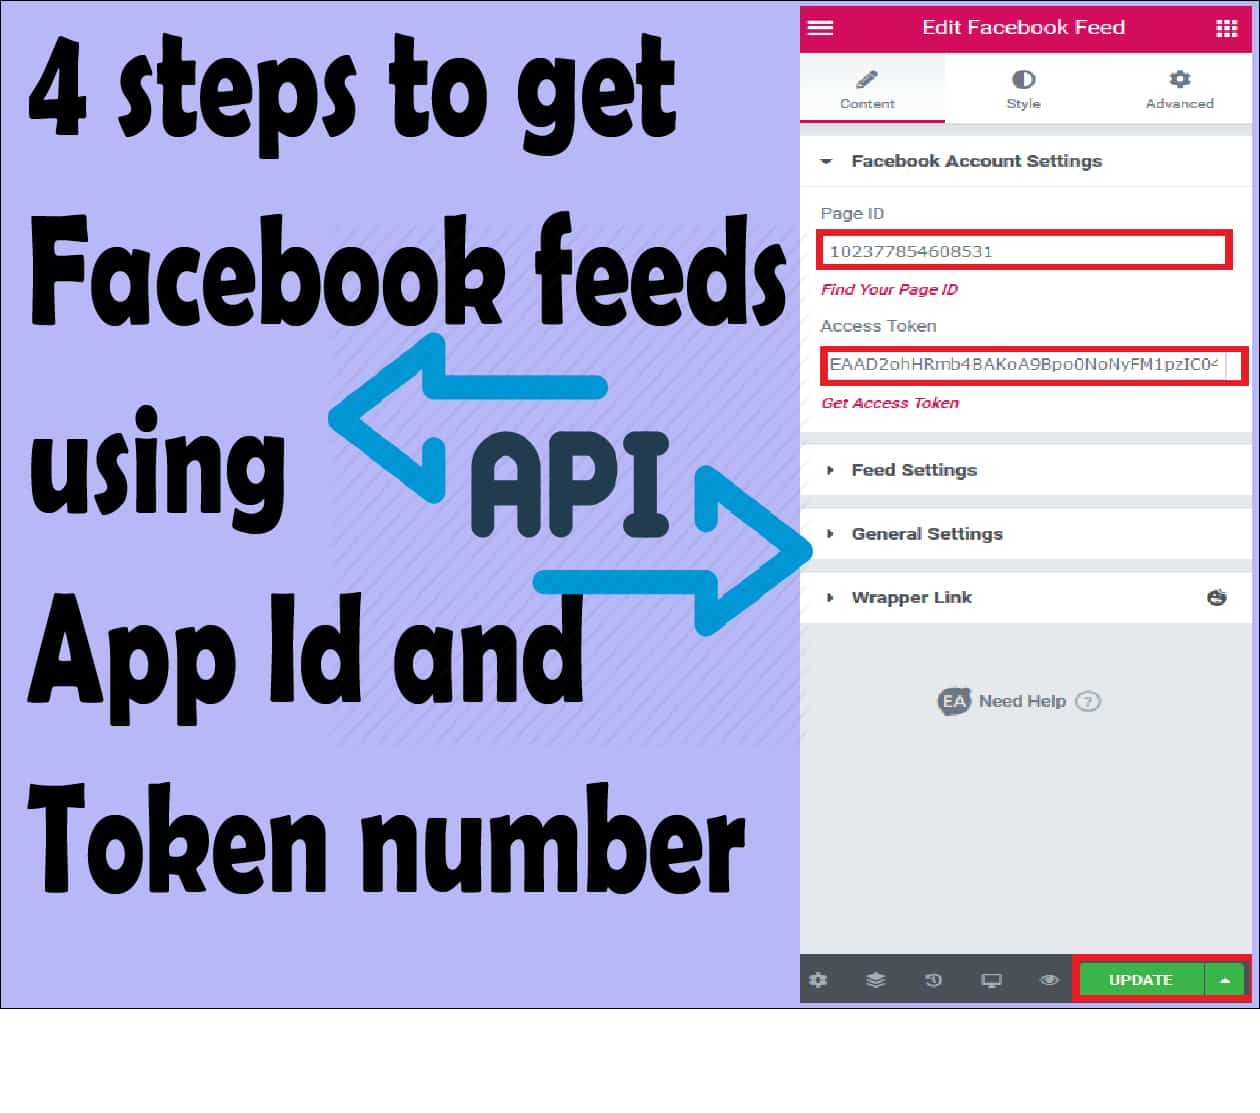 You are currently viewing 4 steps to get facebook feeds using app id and token number